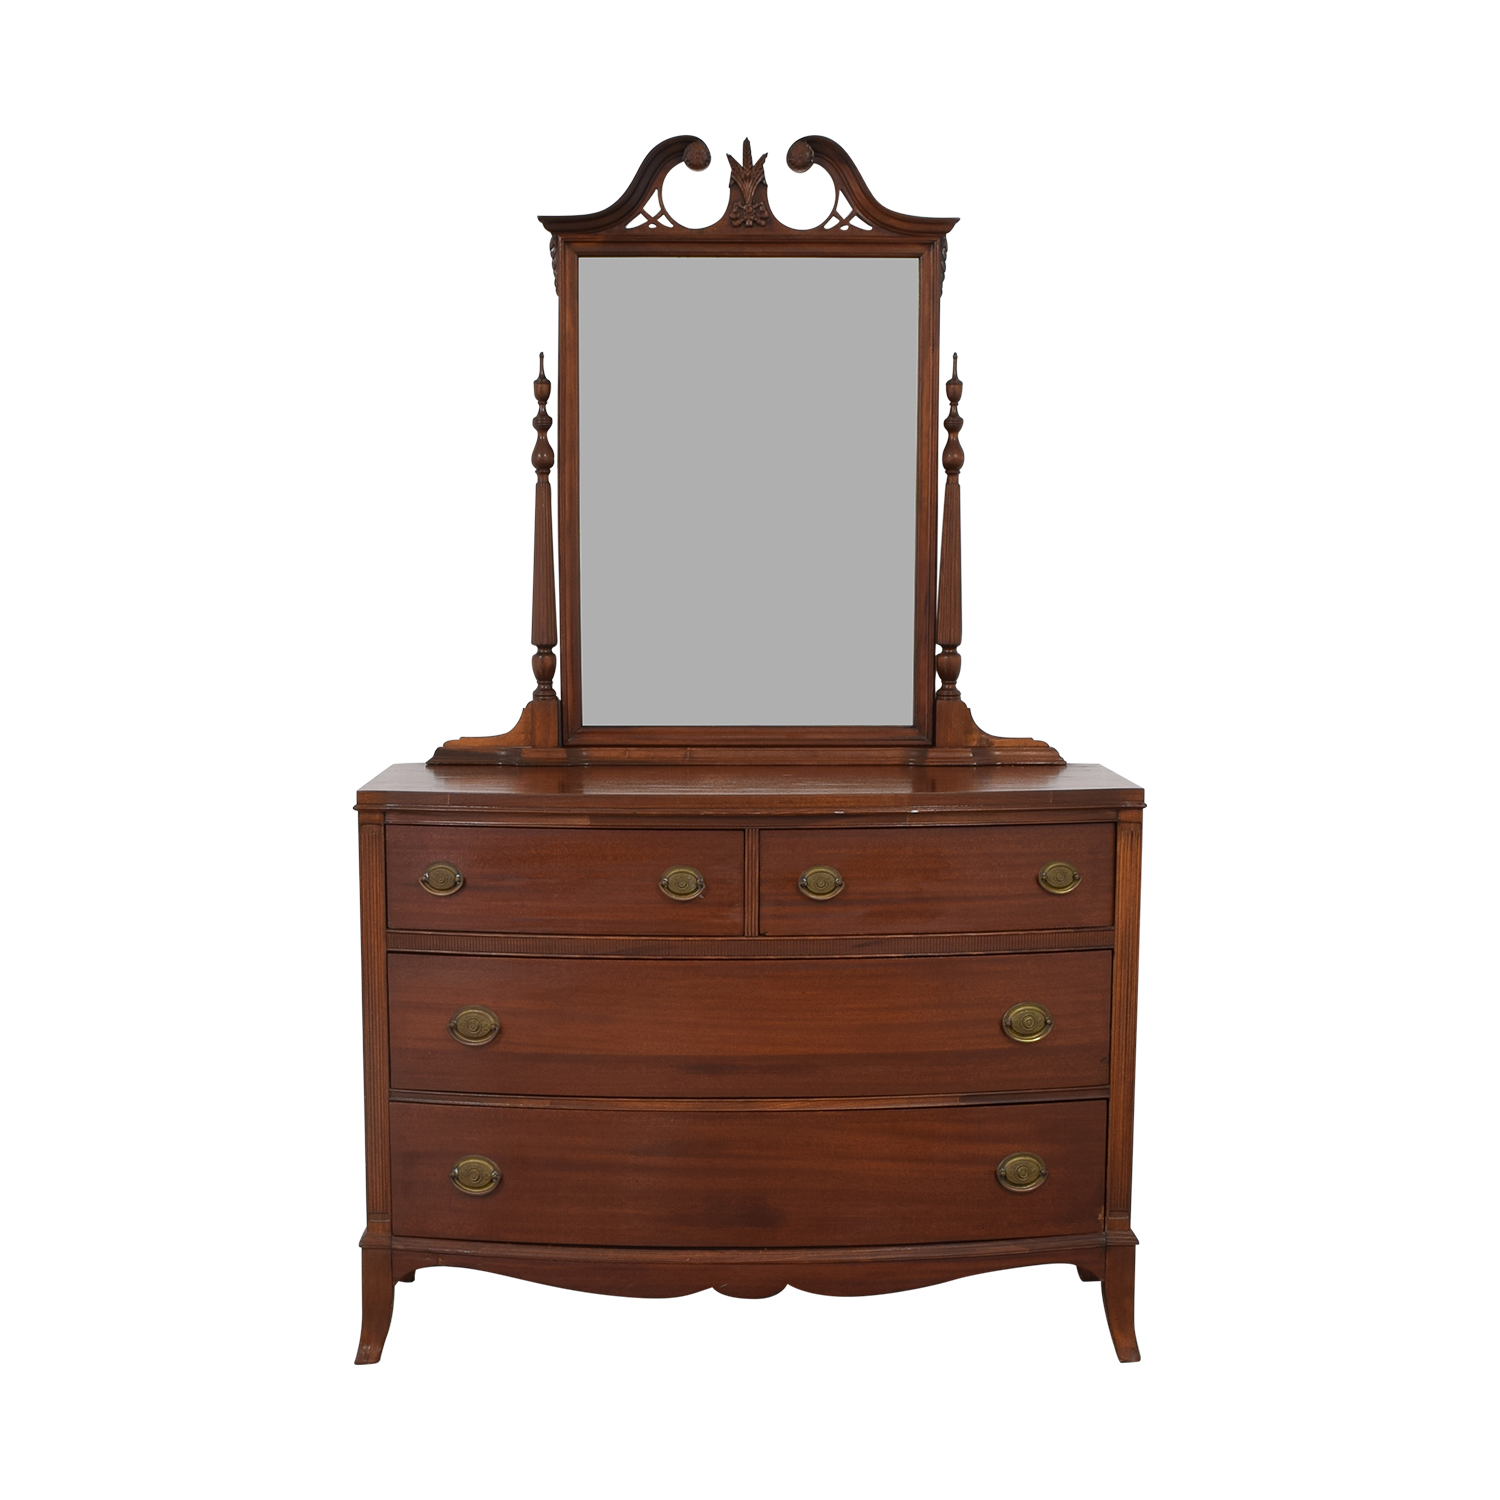 Antique Wooden Dresser with Mirror Storage